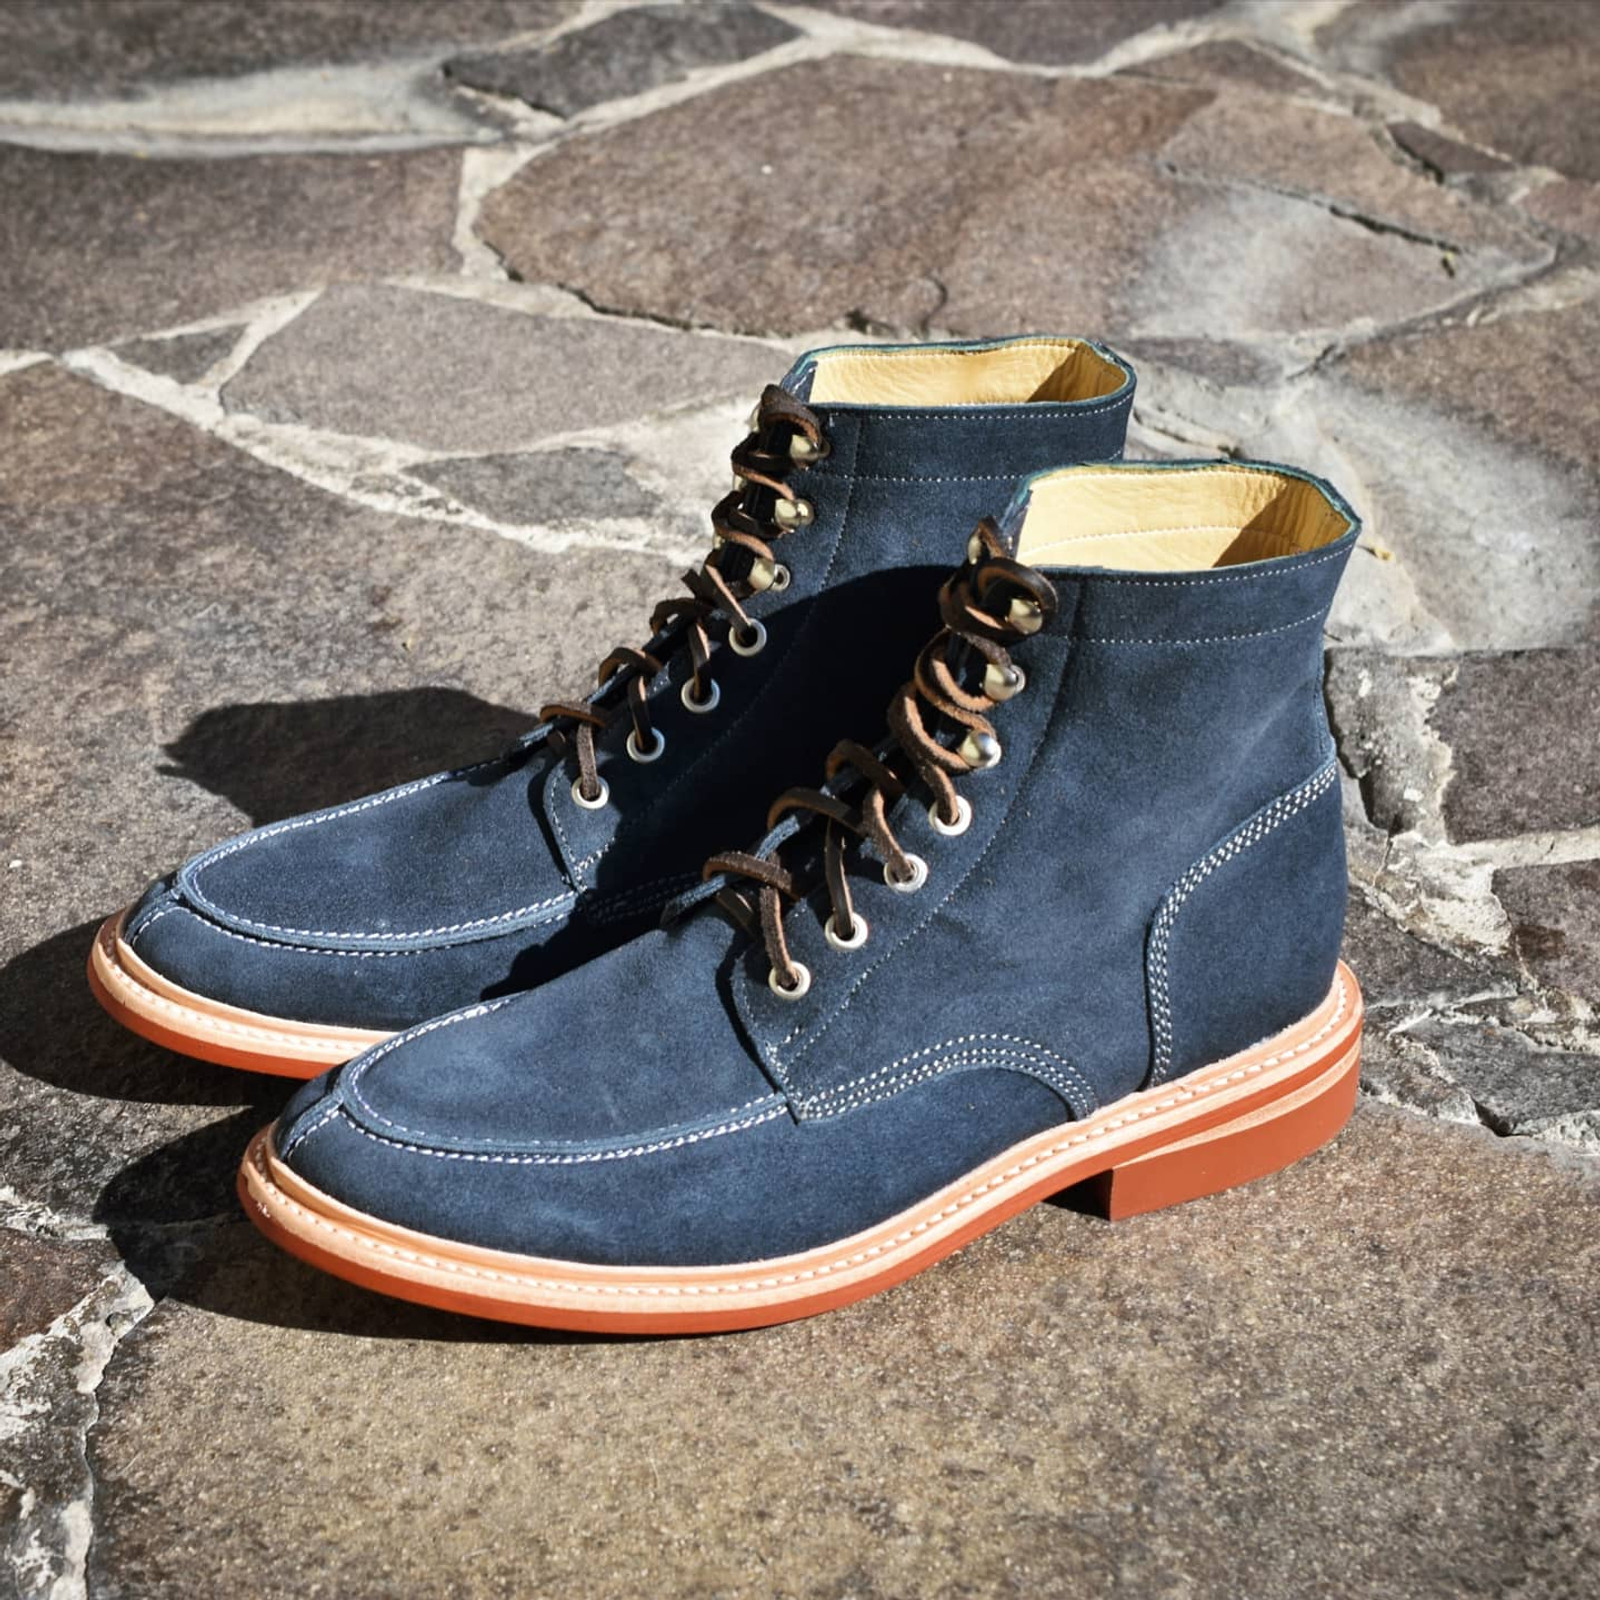 CAMPBELL BOOTS